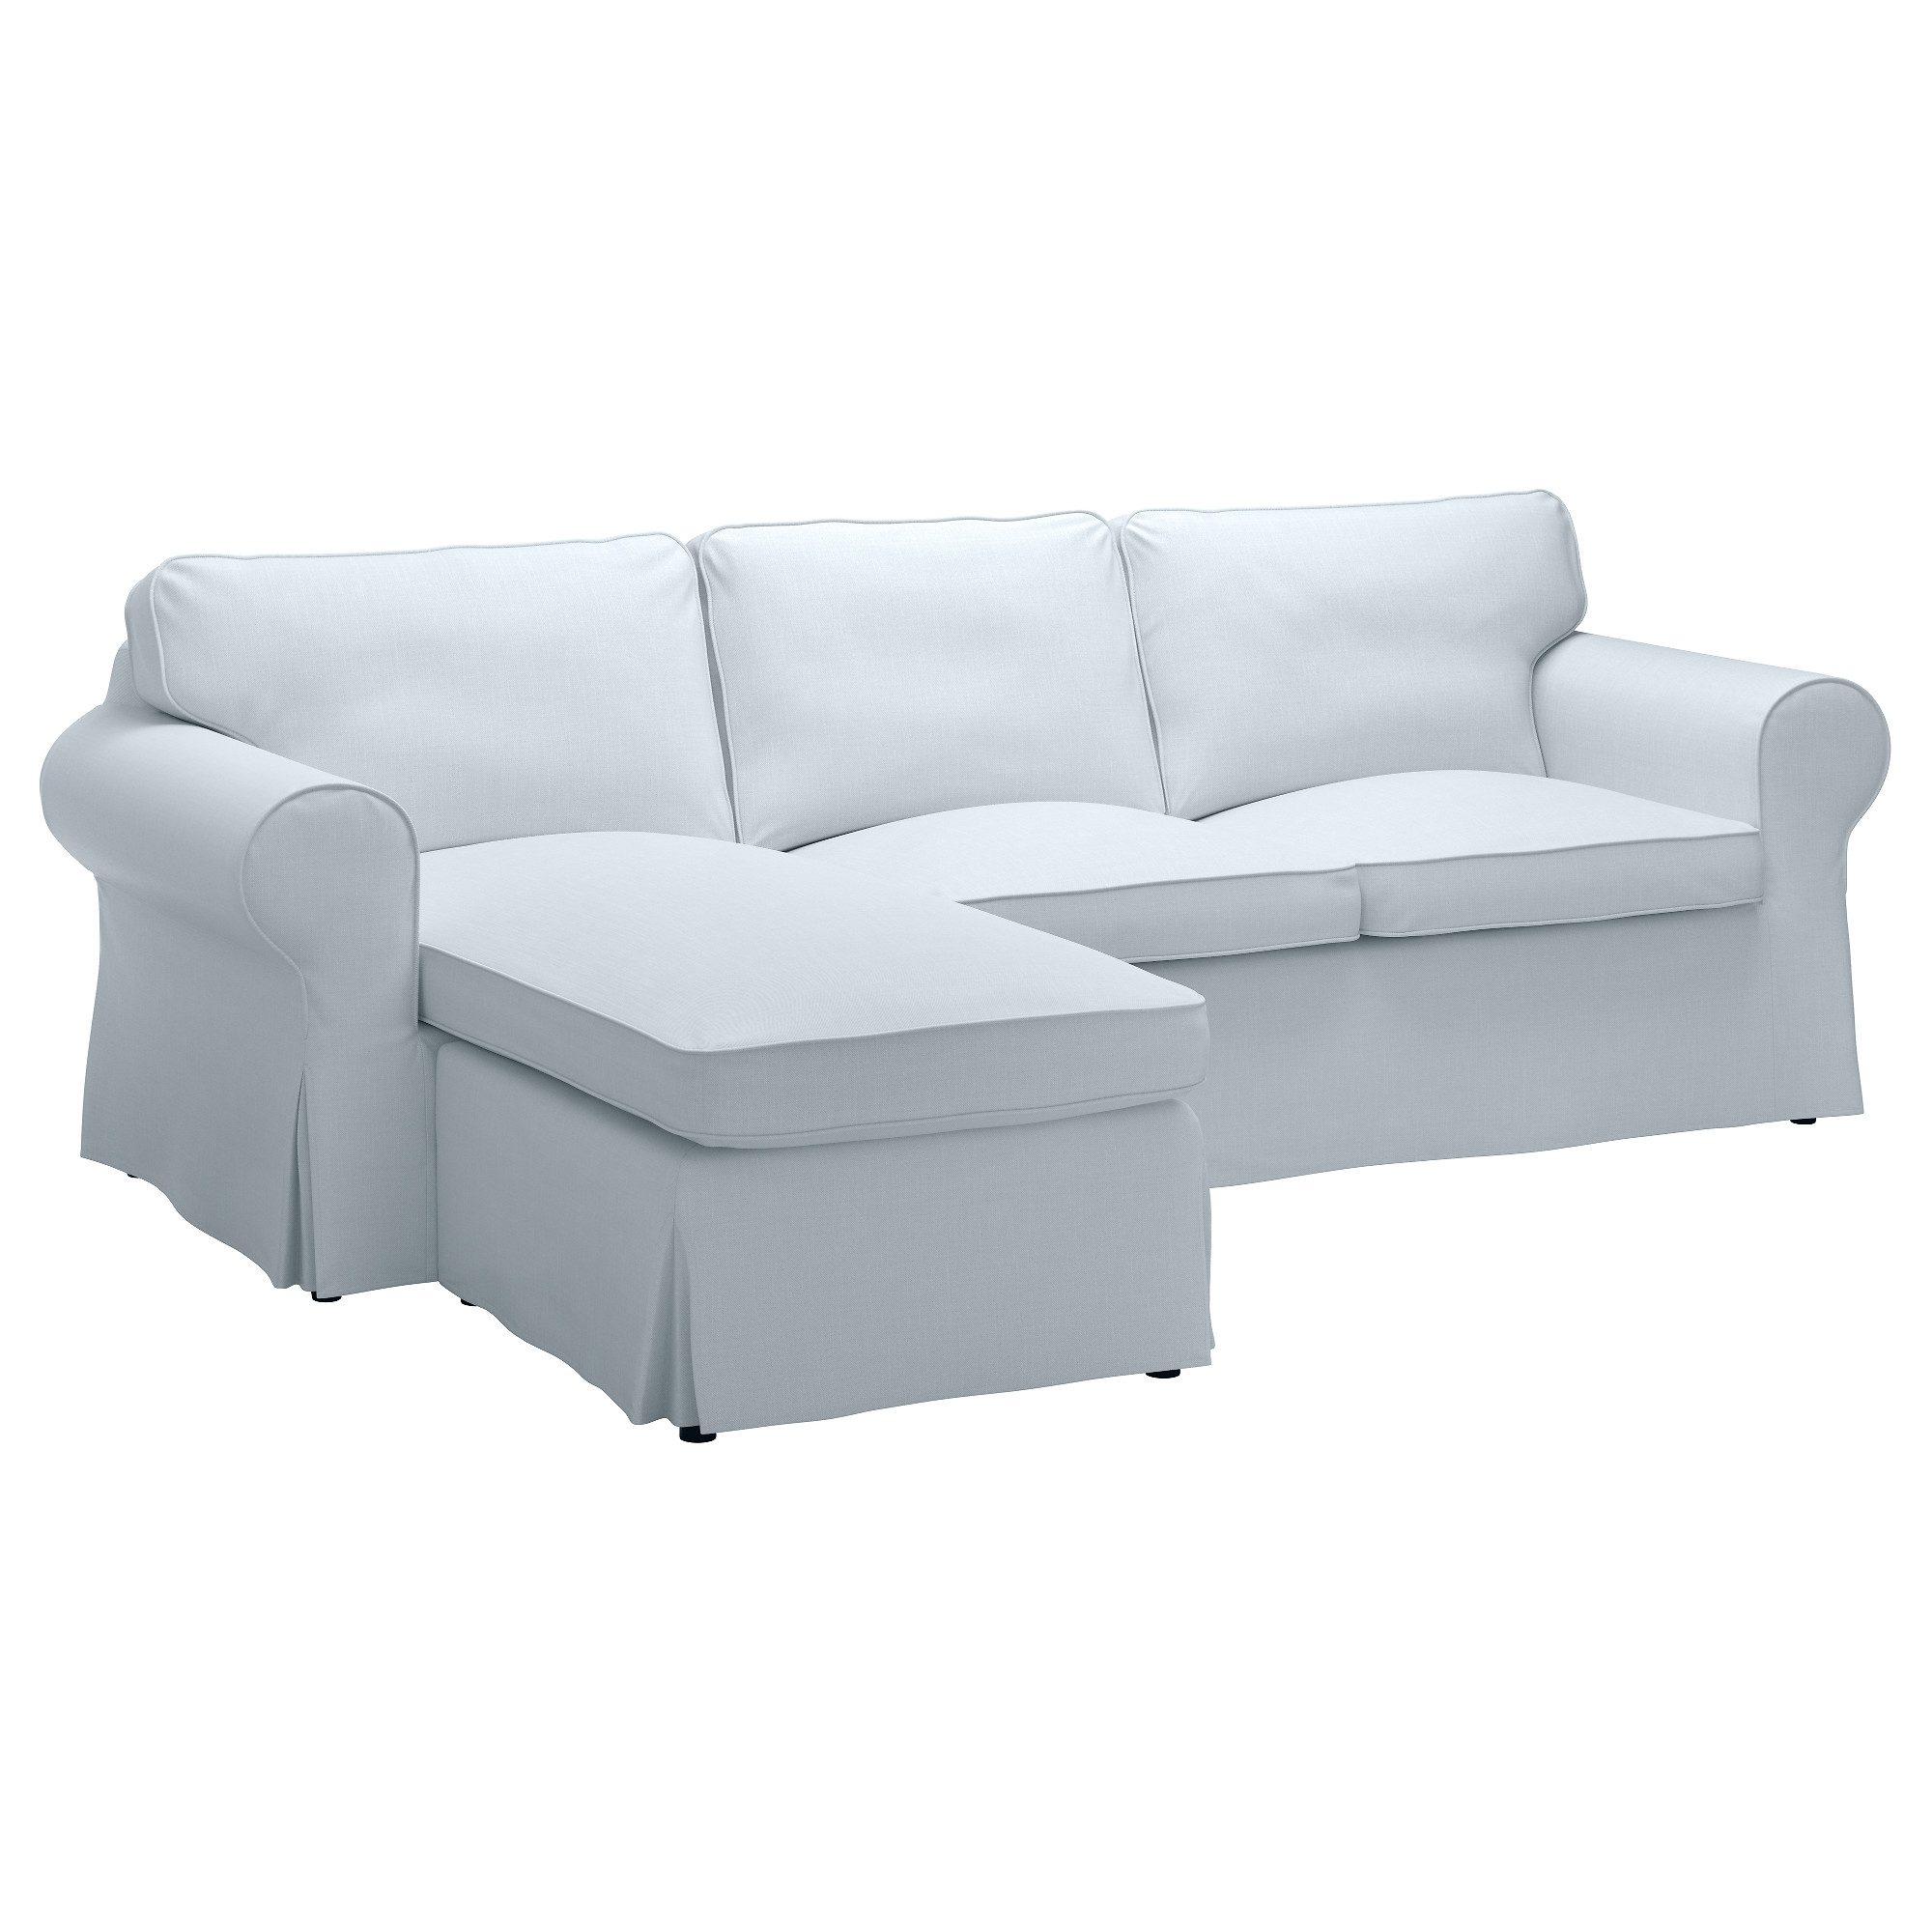 Small Sectional Sofa Ikea 80 With Small Sectional Sofa Ikea Inside Best And Newest Sectional Sofas At Ikea (View 9 of 15)